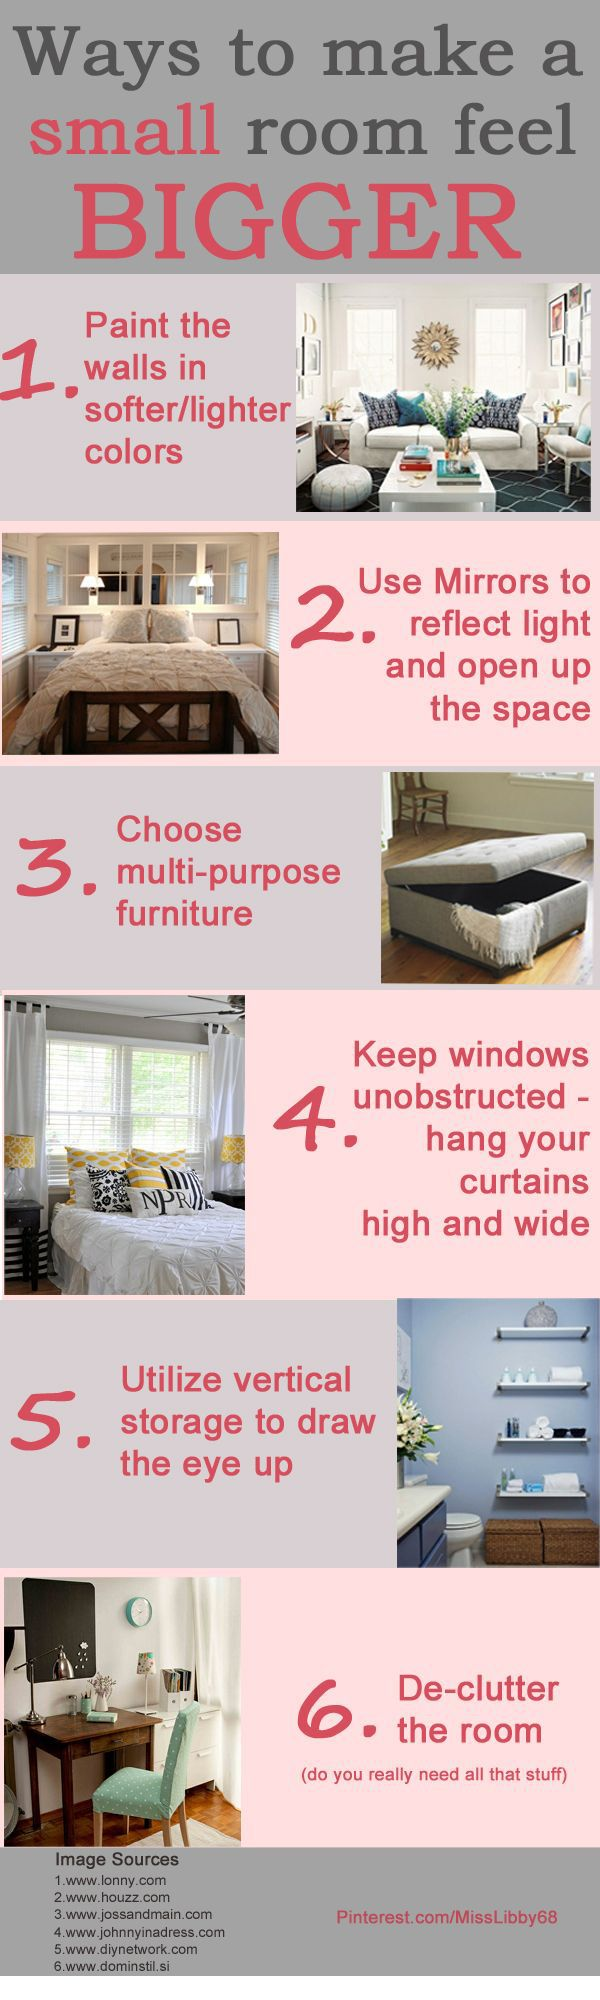 20 bedroom organization tips to make the most of a small space - Bedroom Ideas Small Spaces